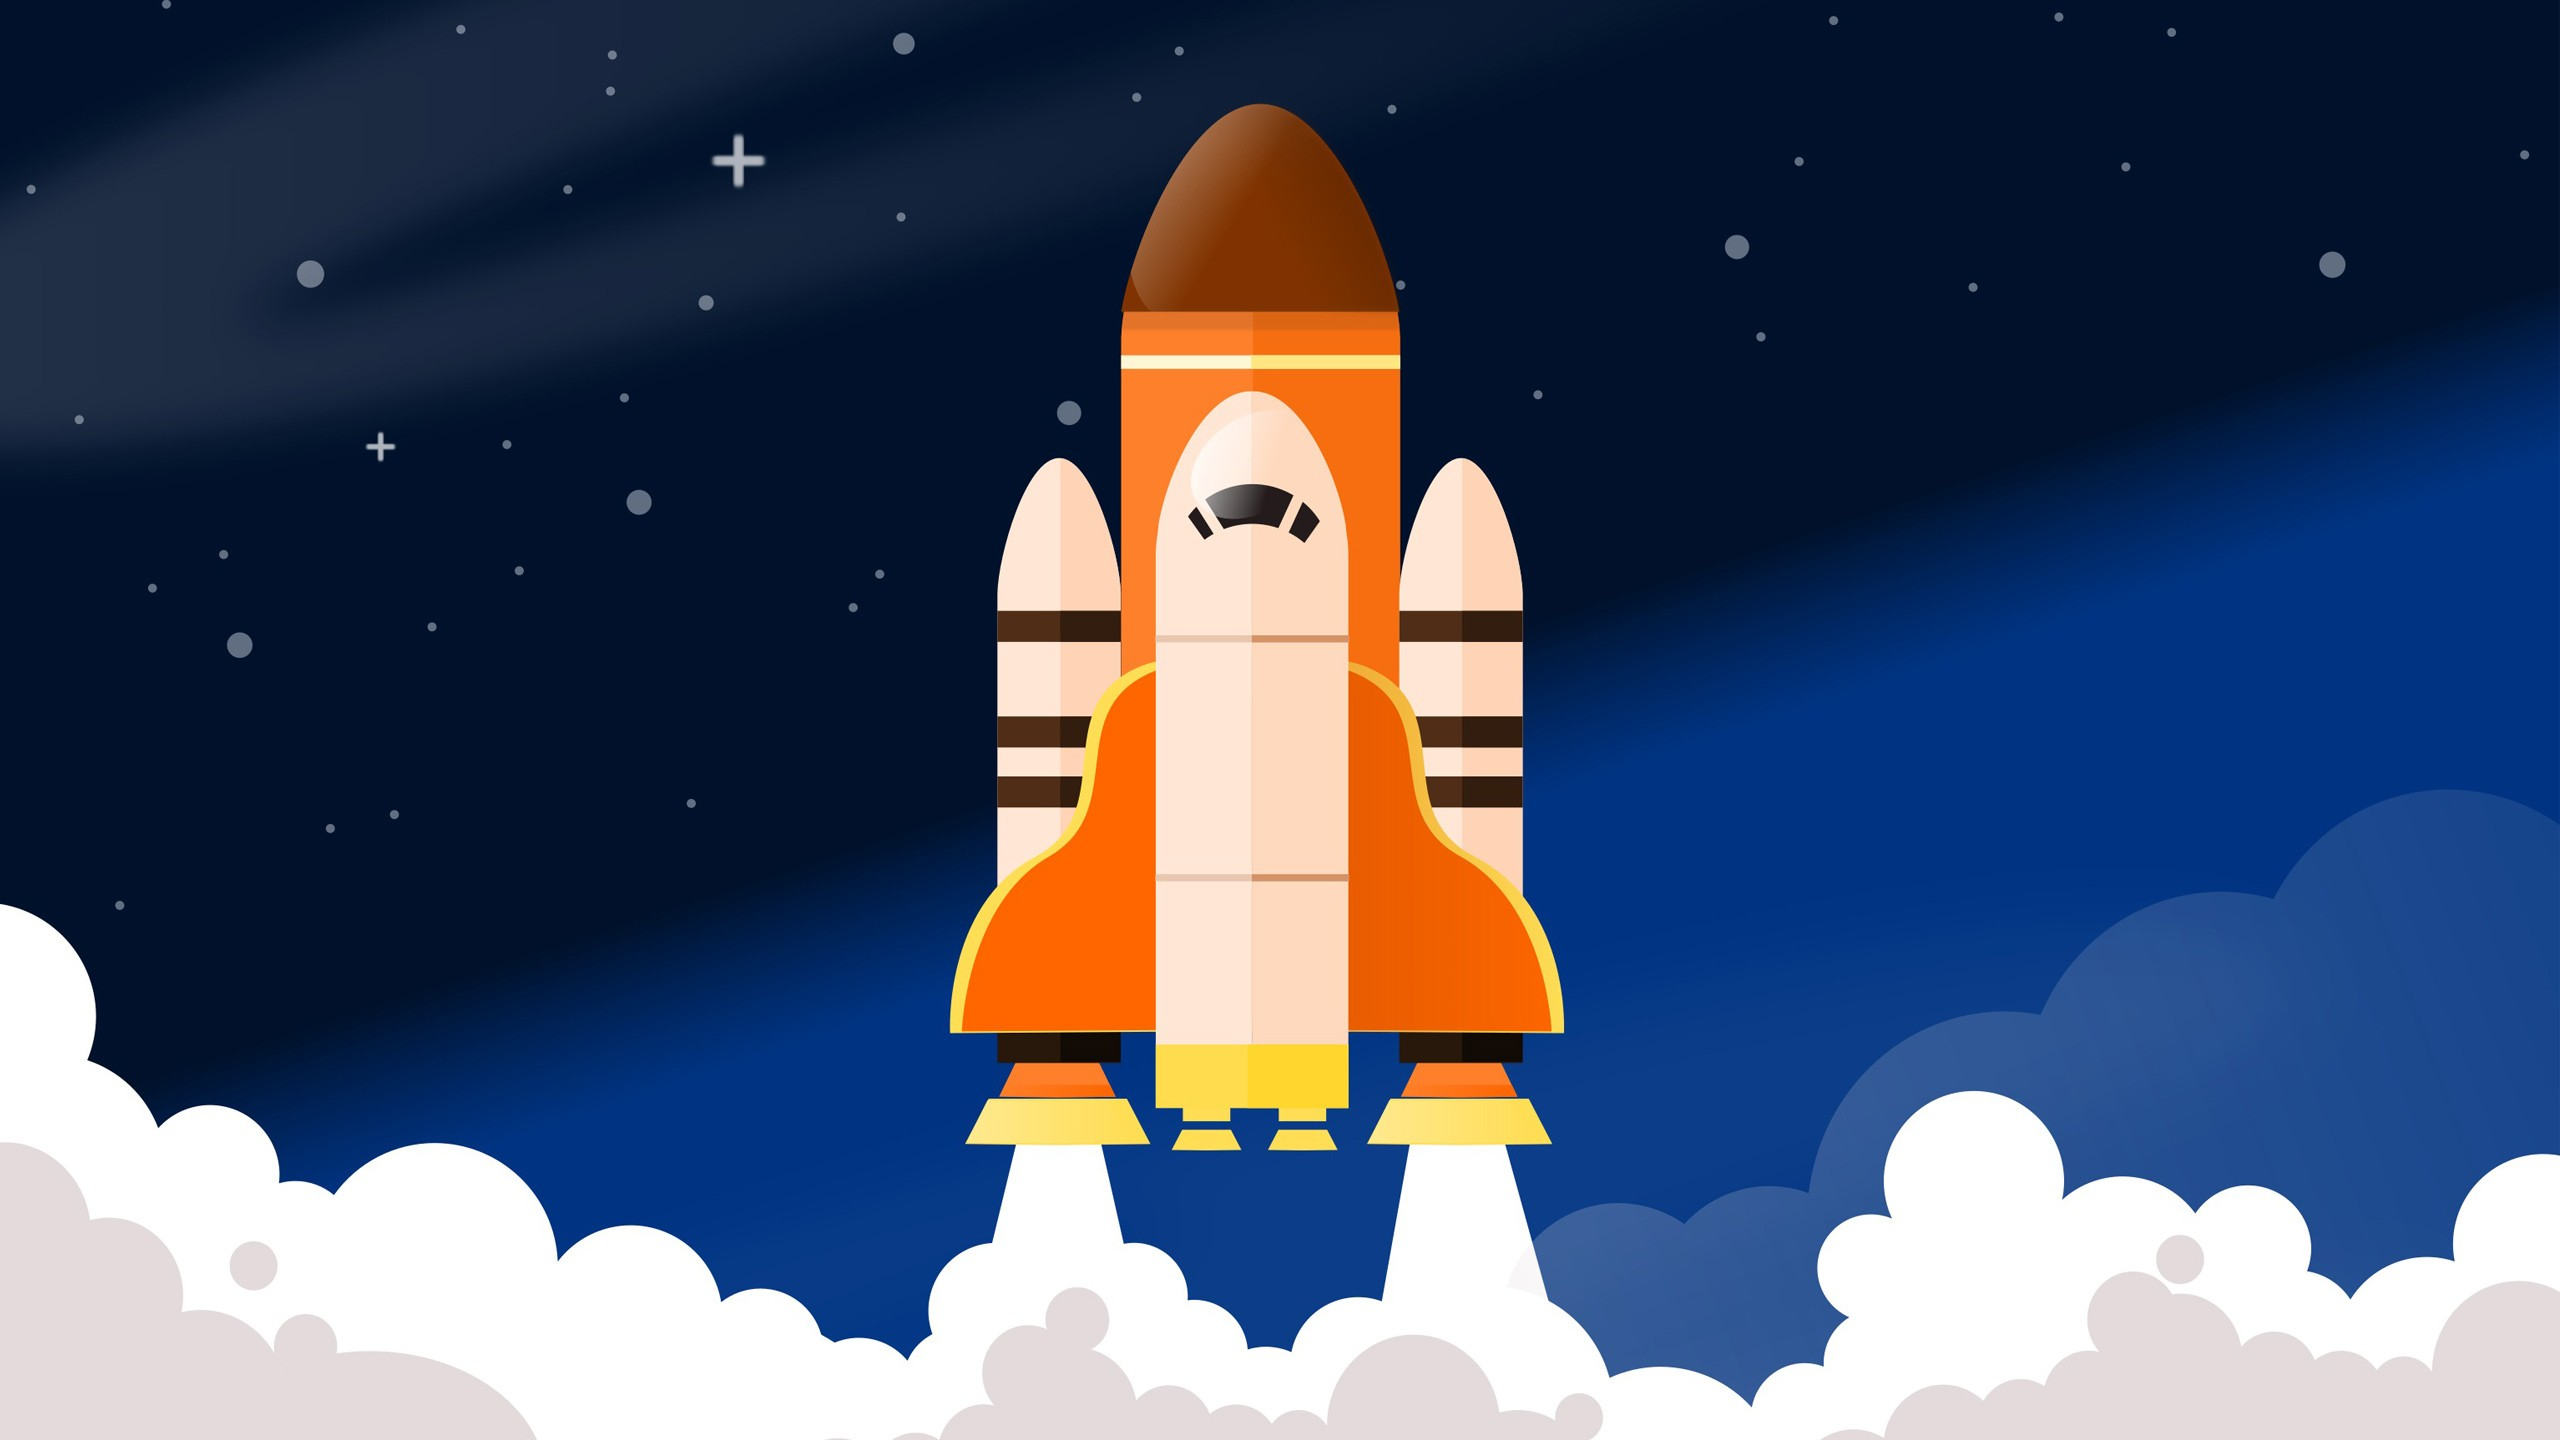 Iphone 5s Animated Wallpaper Space Shuttle Rocket Wallpapers Hd Wallpapers Id 19013